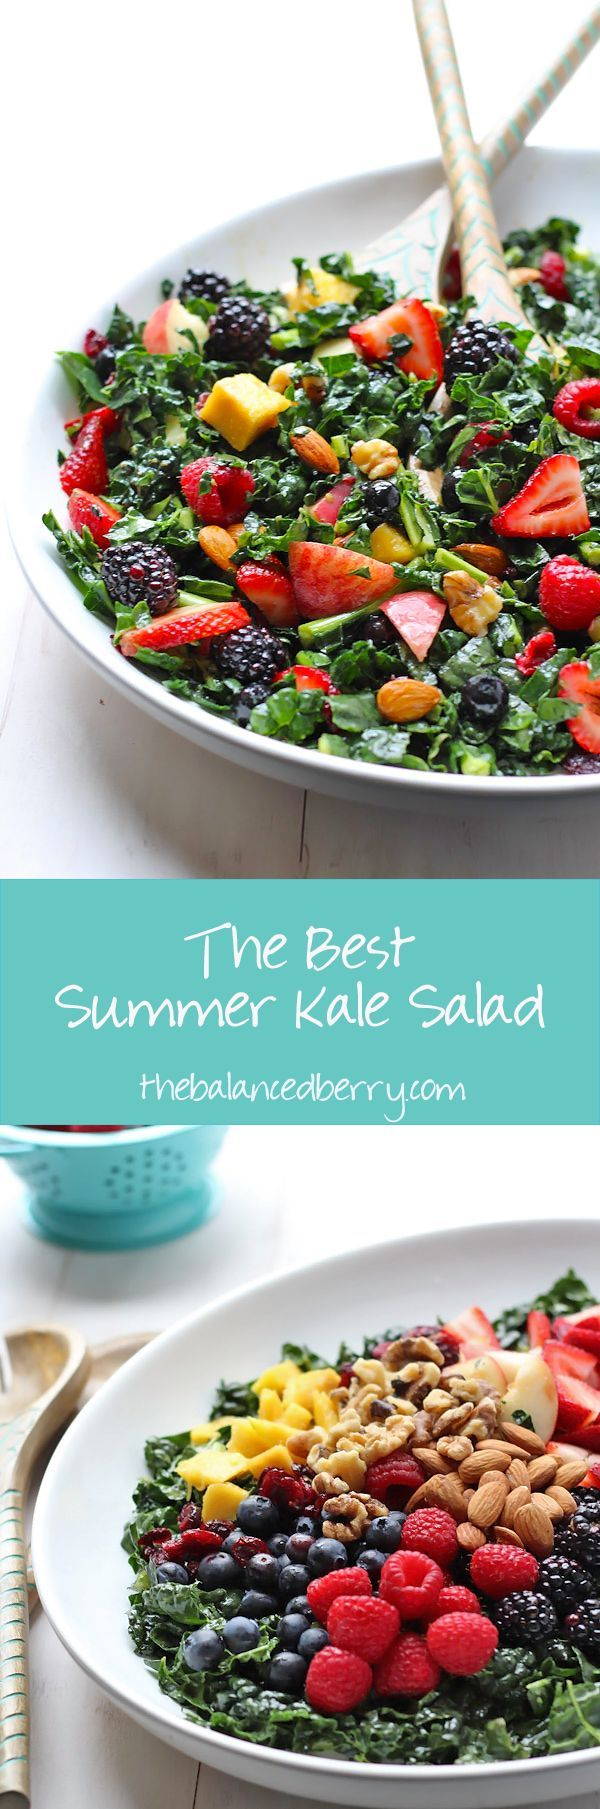 The Best Summer Kale Salad Recipe - perfect for BBQ, potluck or dinner side dish!hy